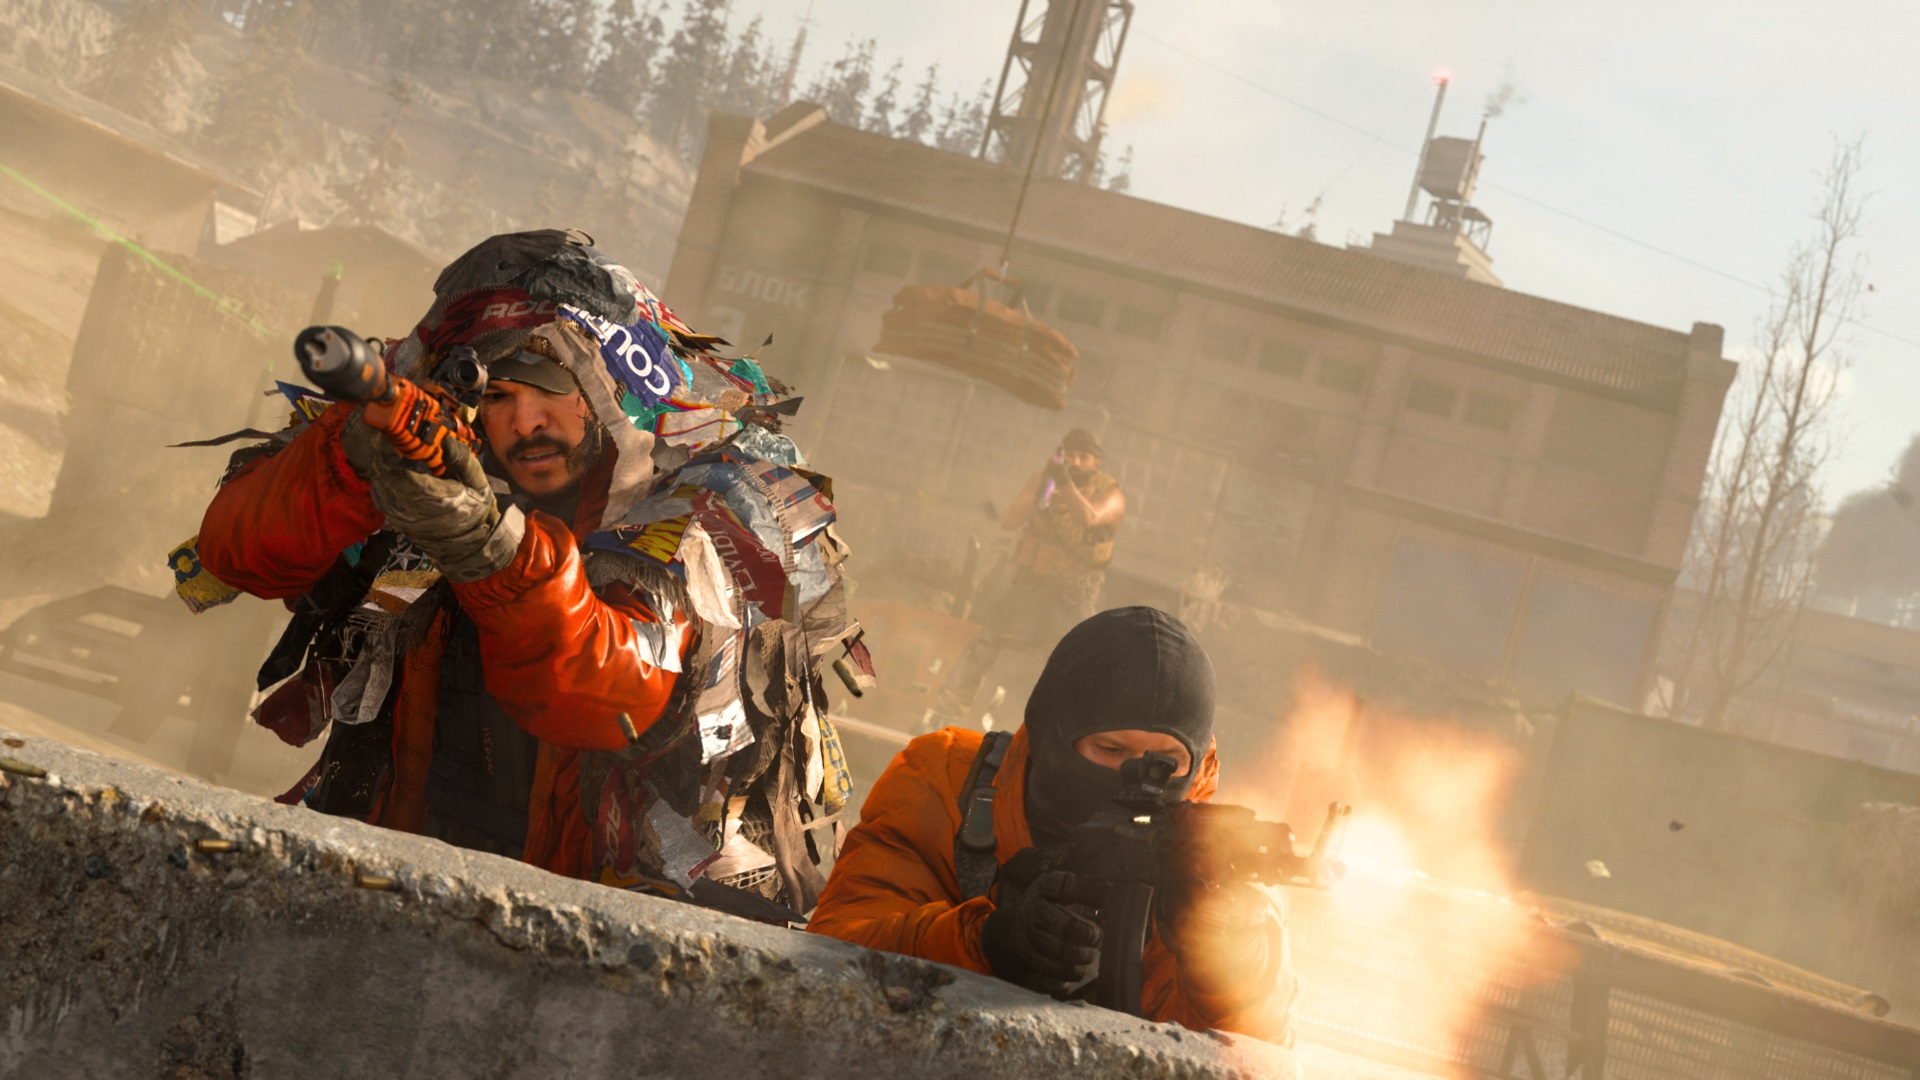 Call of Duty Warzone two players firing weapons